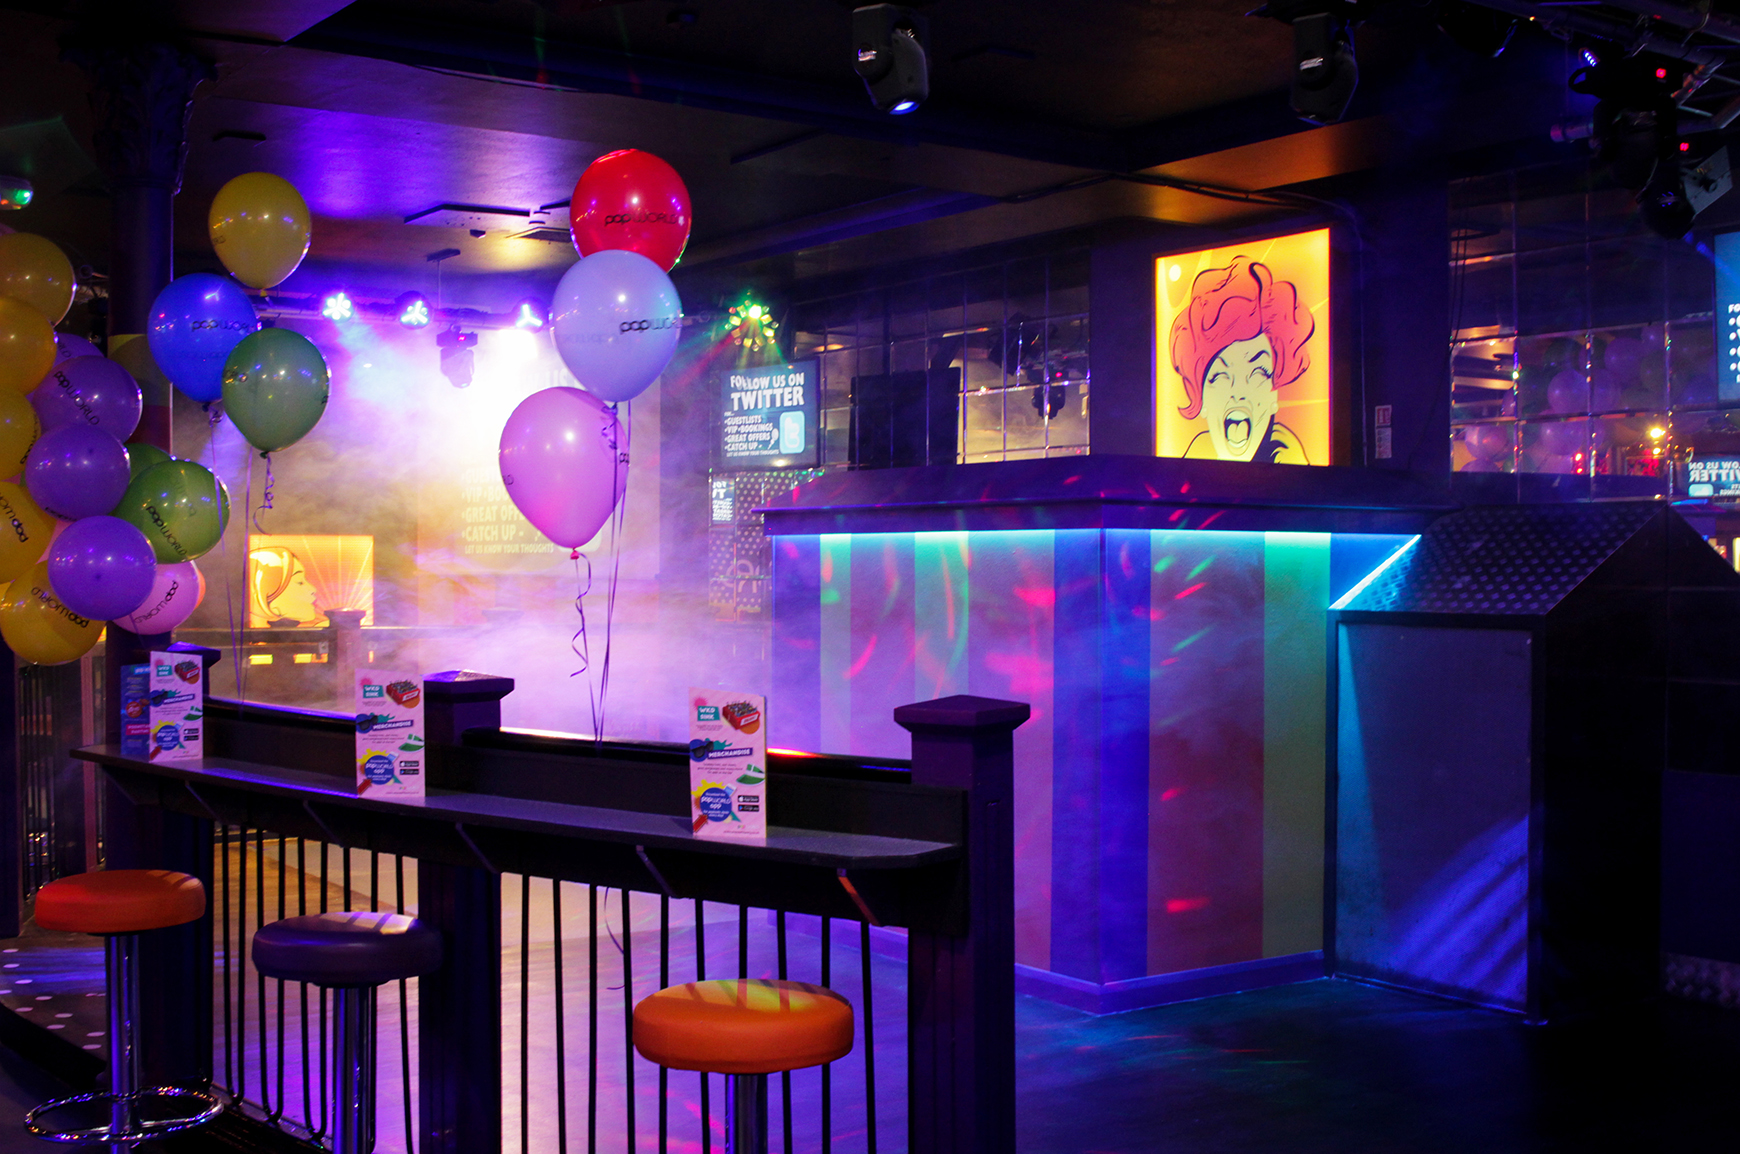 Popworld revamp with Equinox